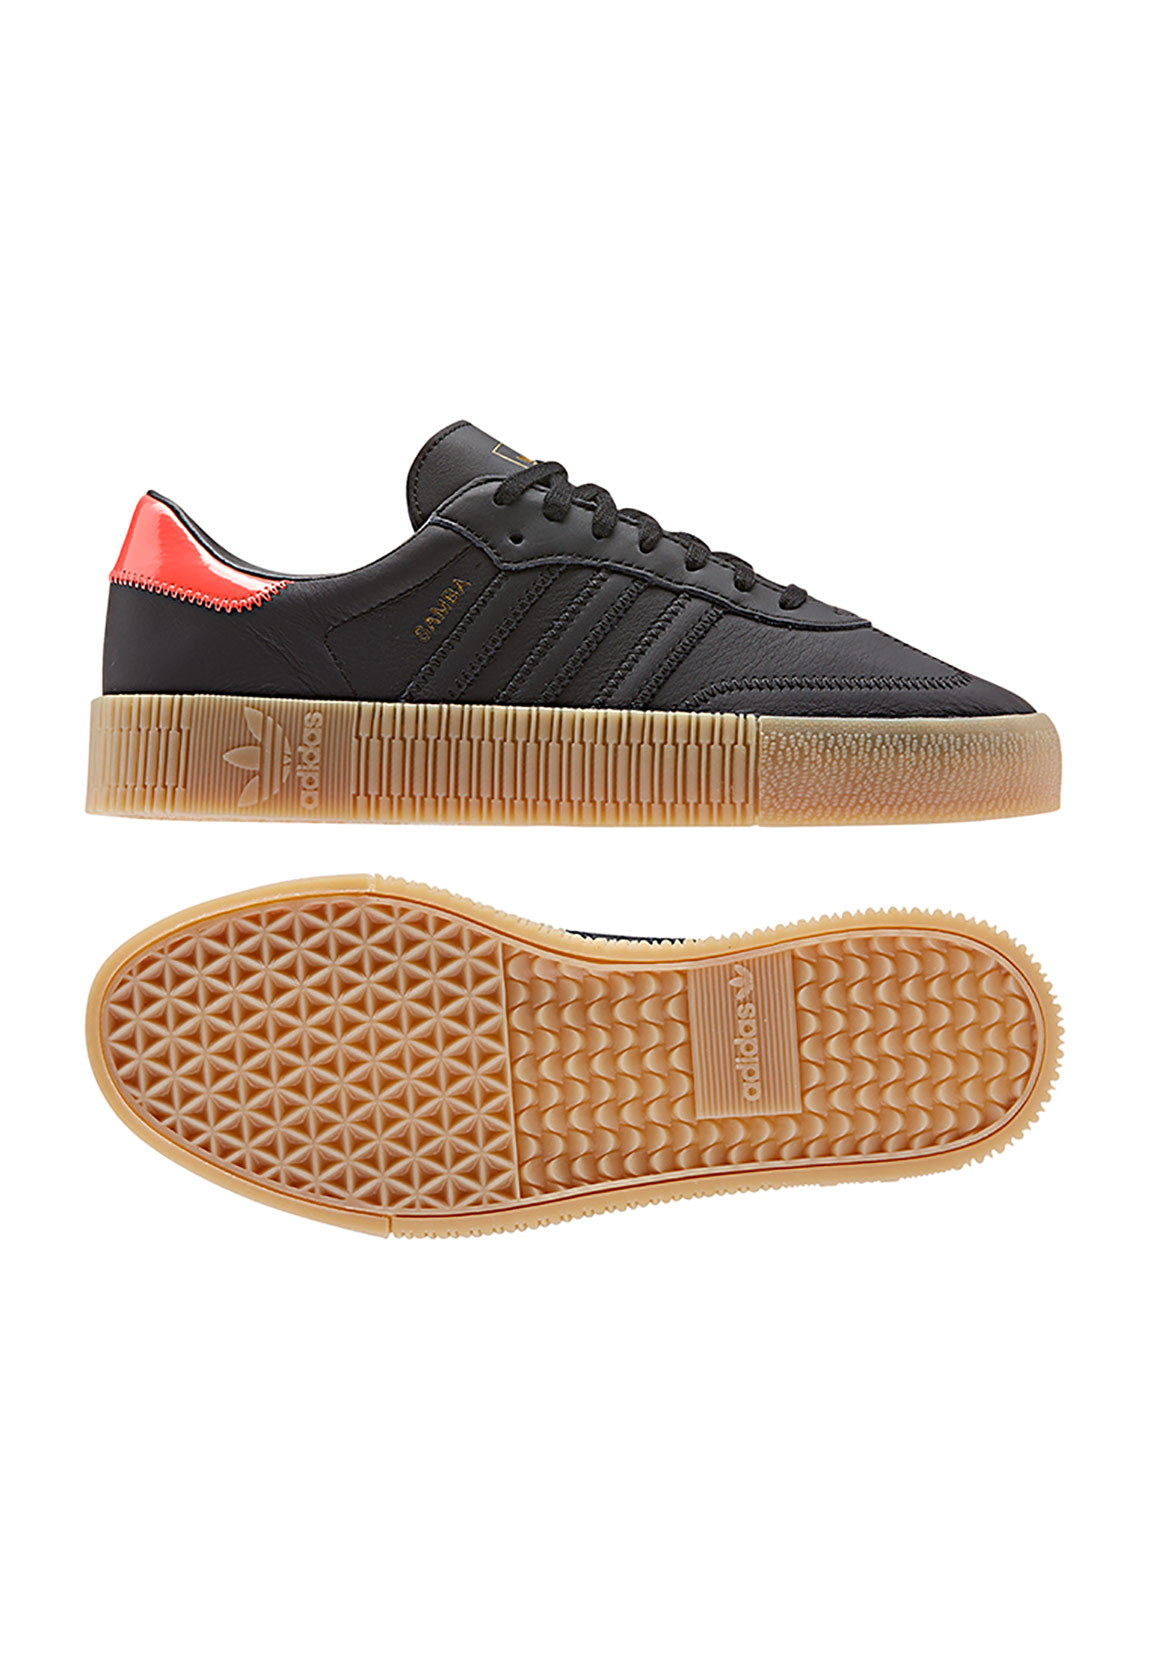 usa cheap sale promo codes new styles adidas schwarz orange sneaker